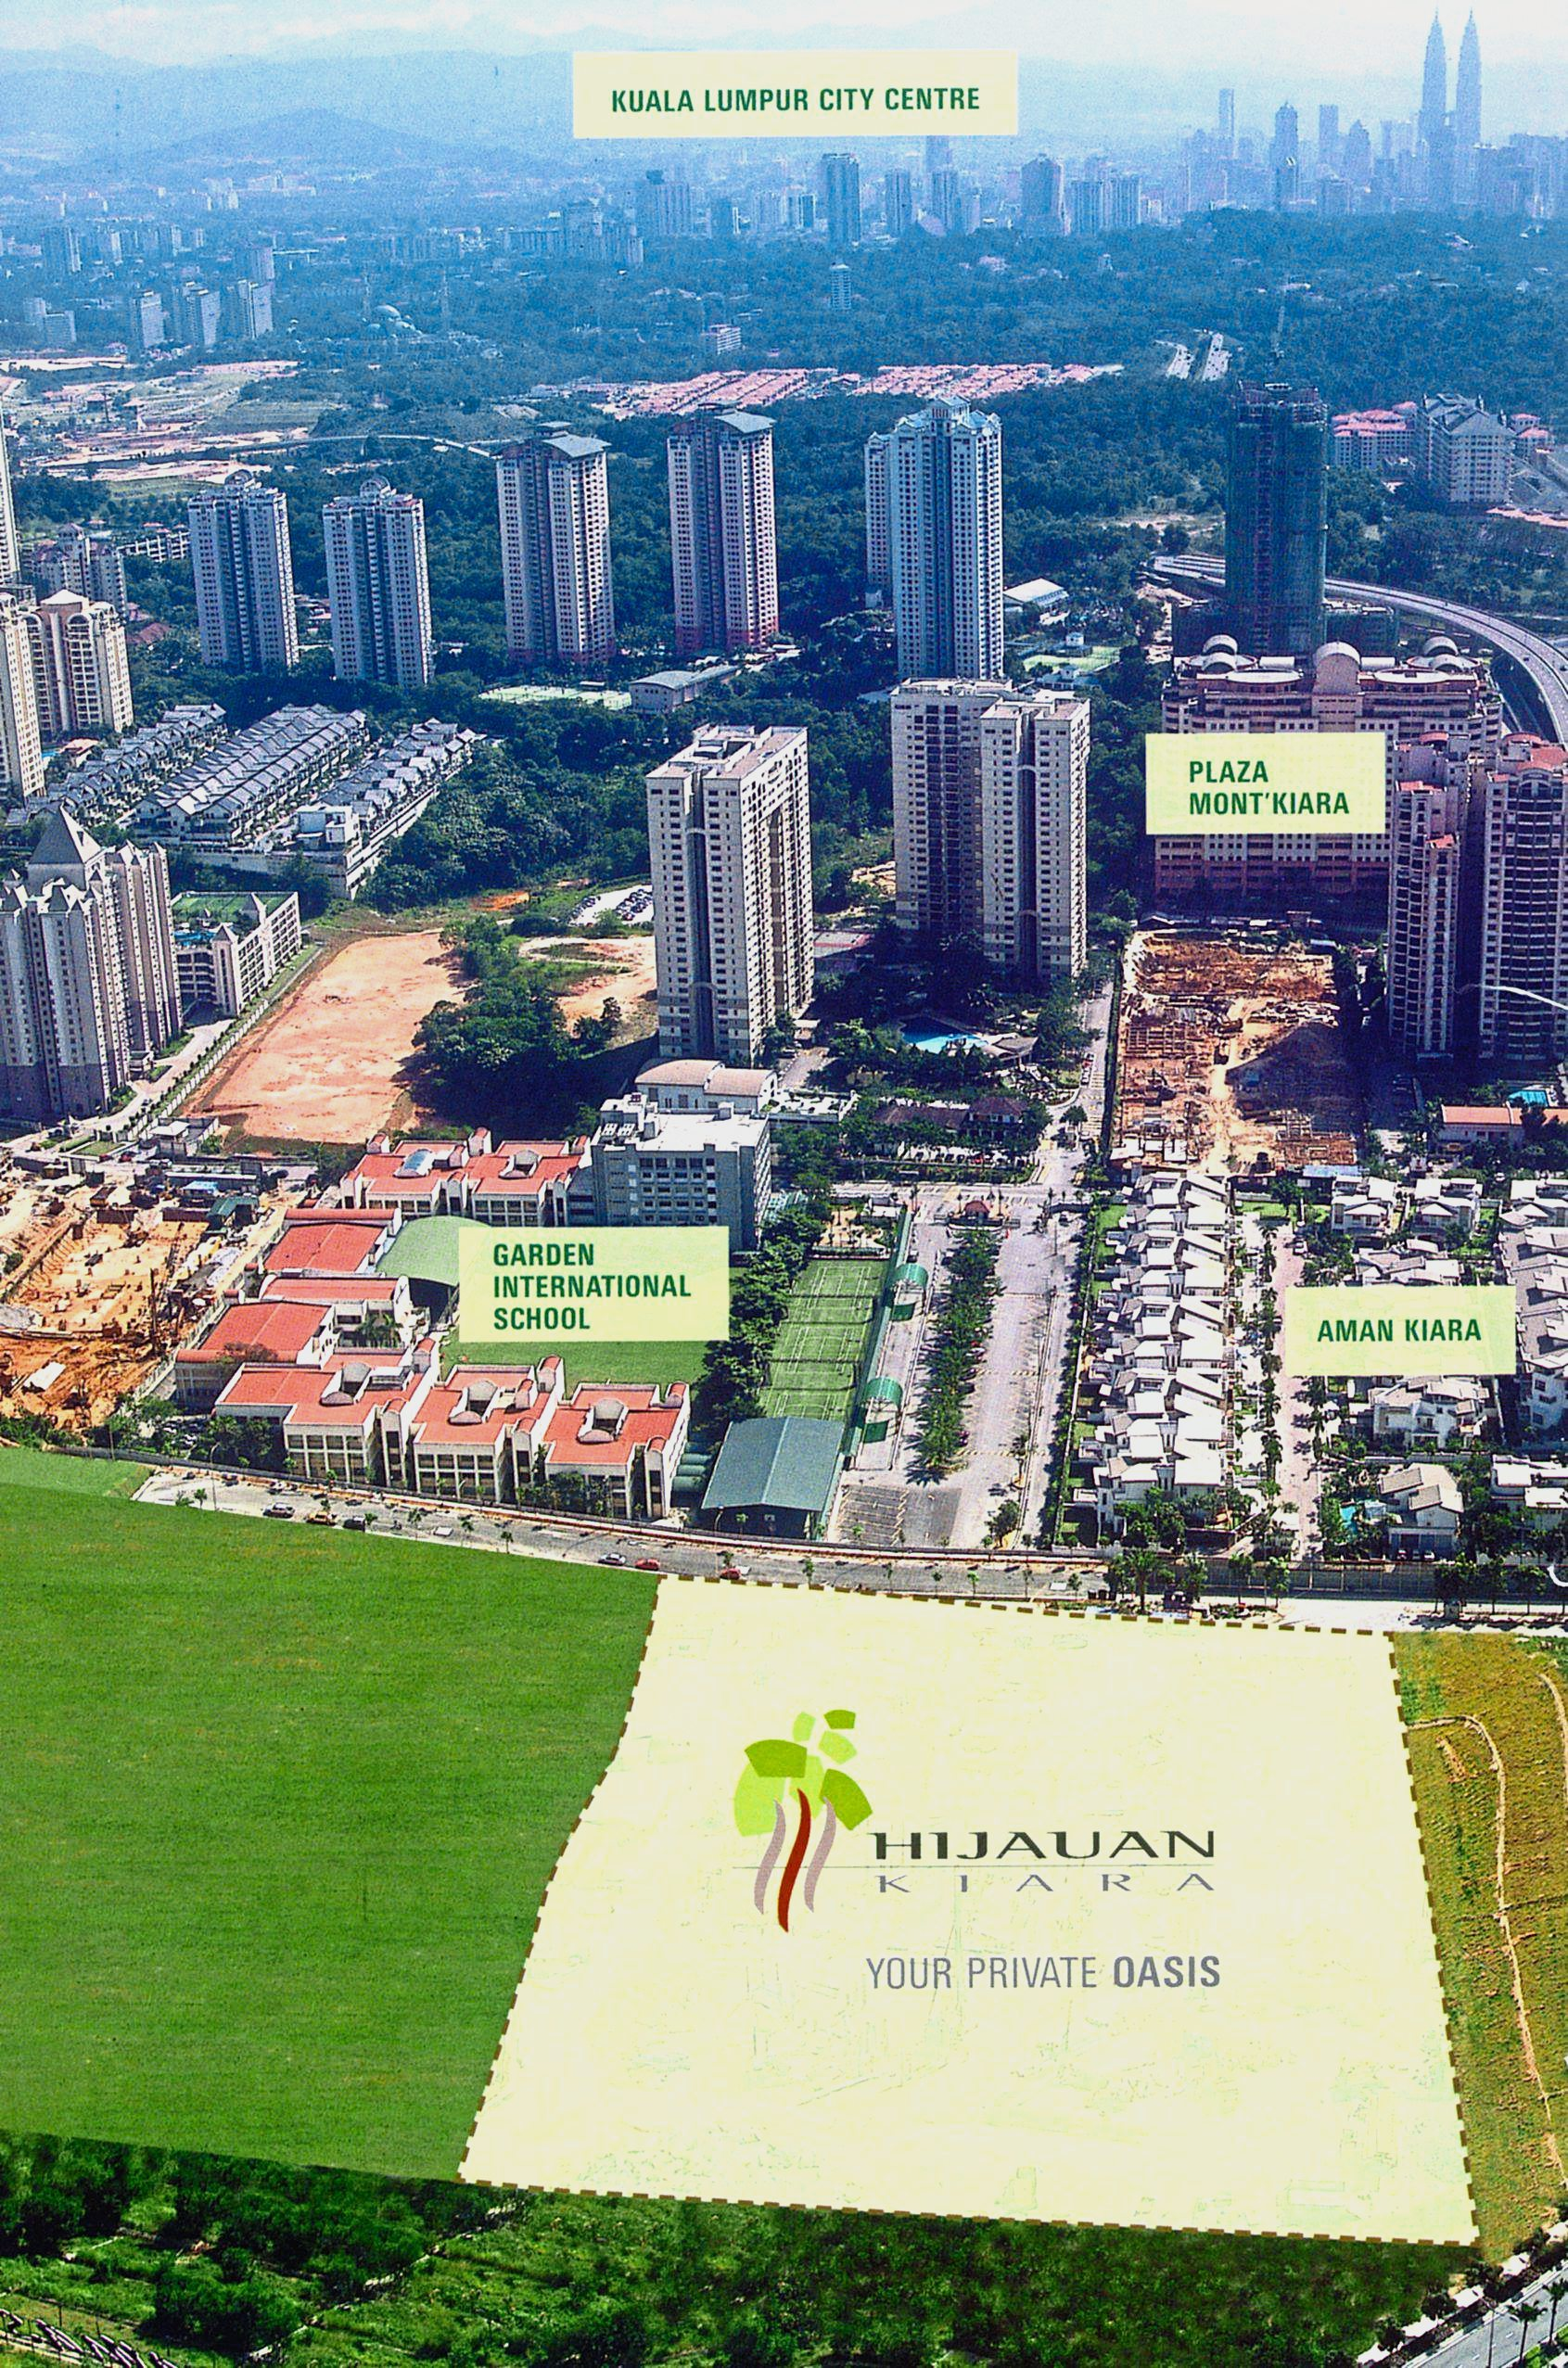 A panoramic view of the Mont' Kiara area from the proposed Hijauan Kiara luxury condominium